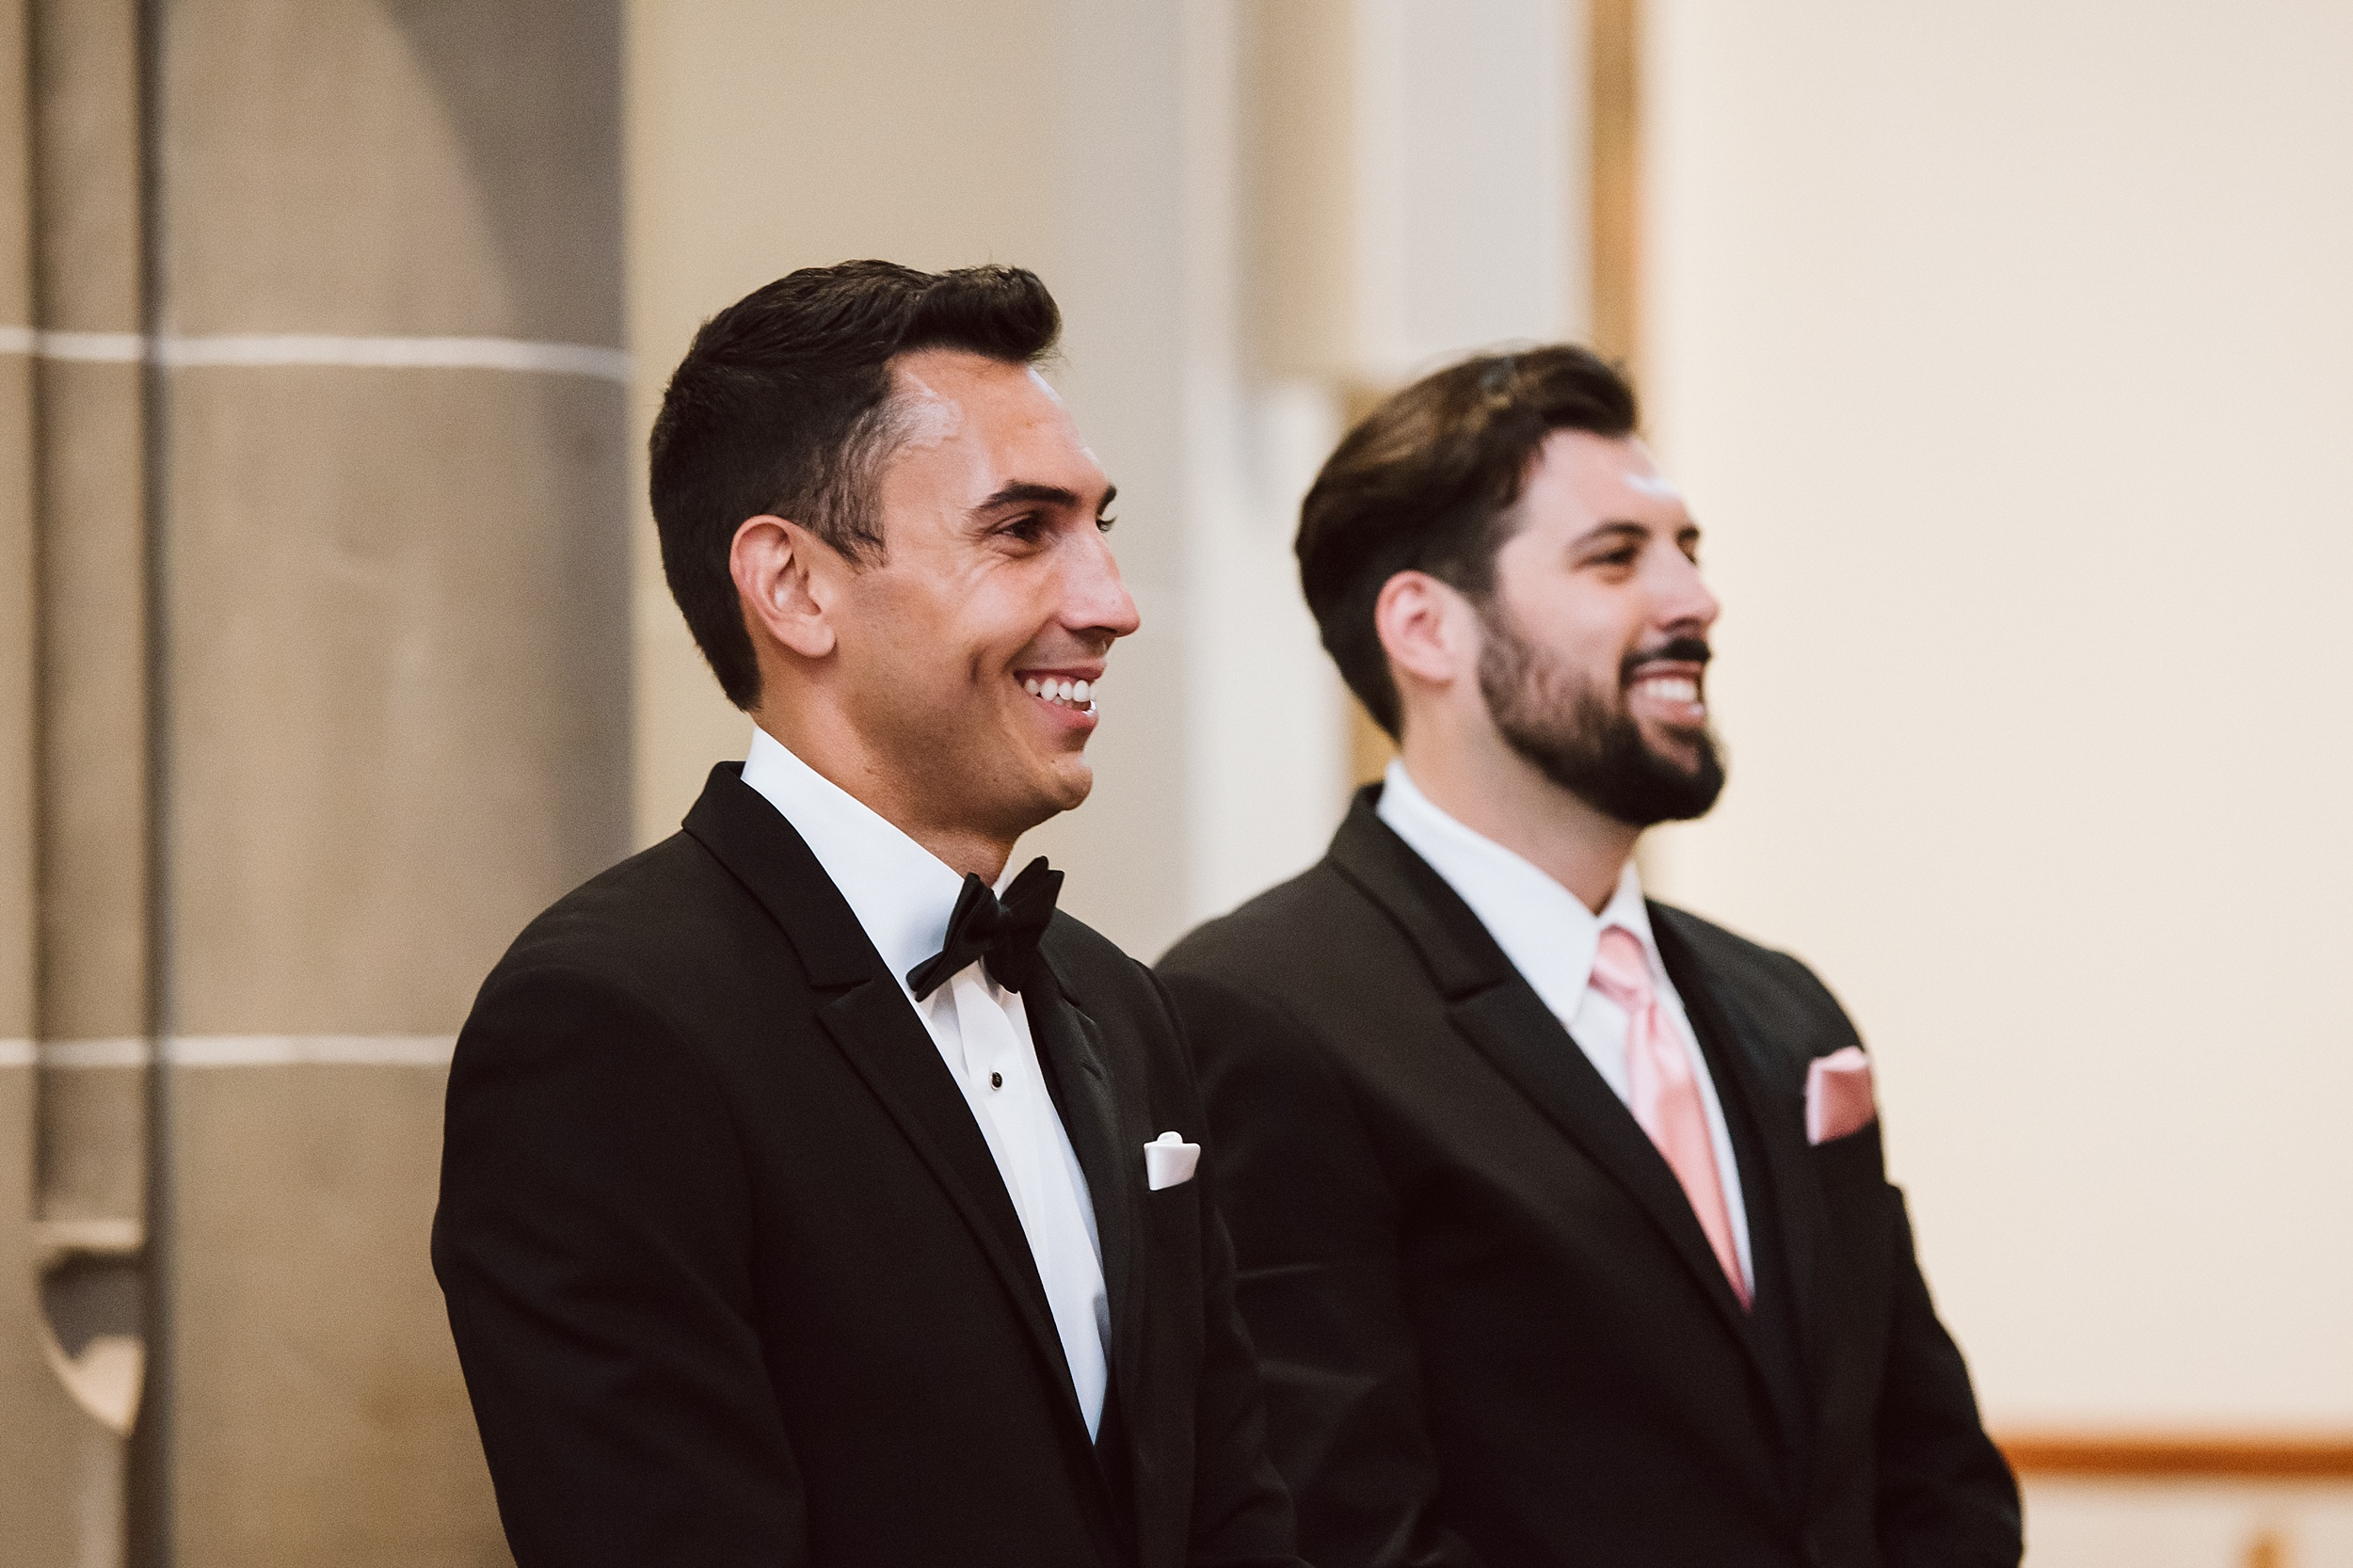 Toronto_Wedding_Photographer_Catholic_Portuguese_0022.jpg